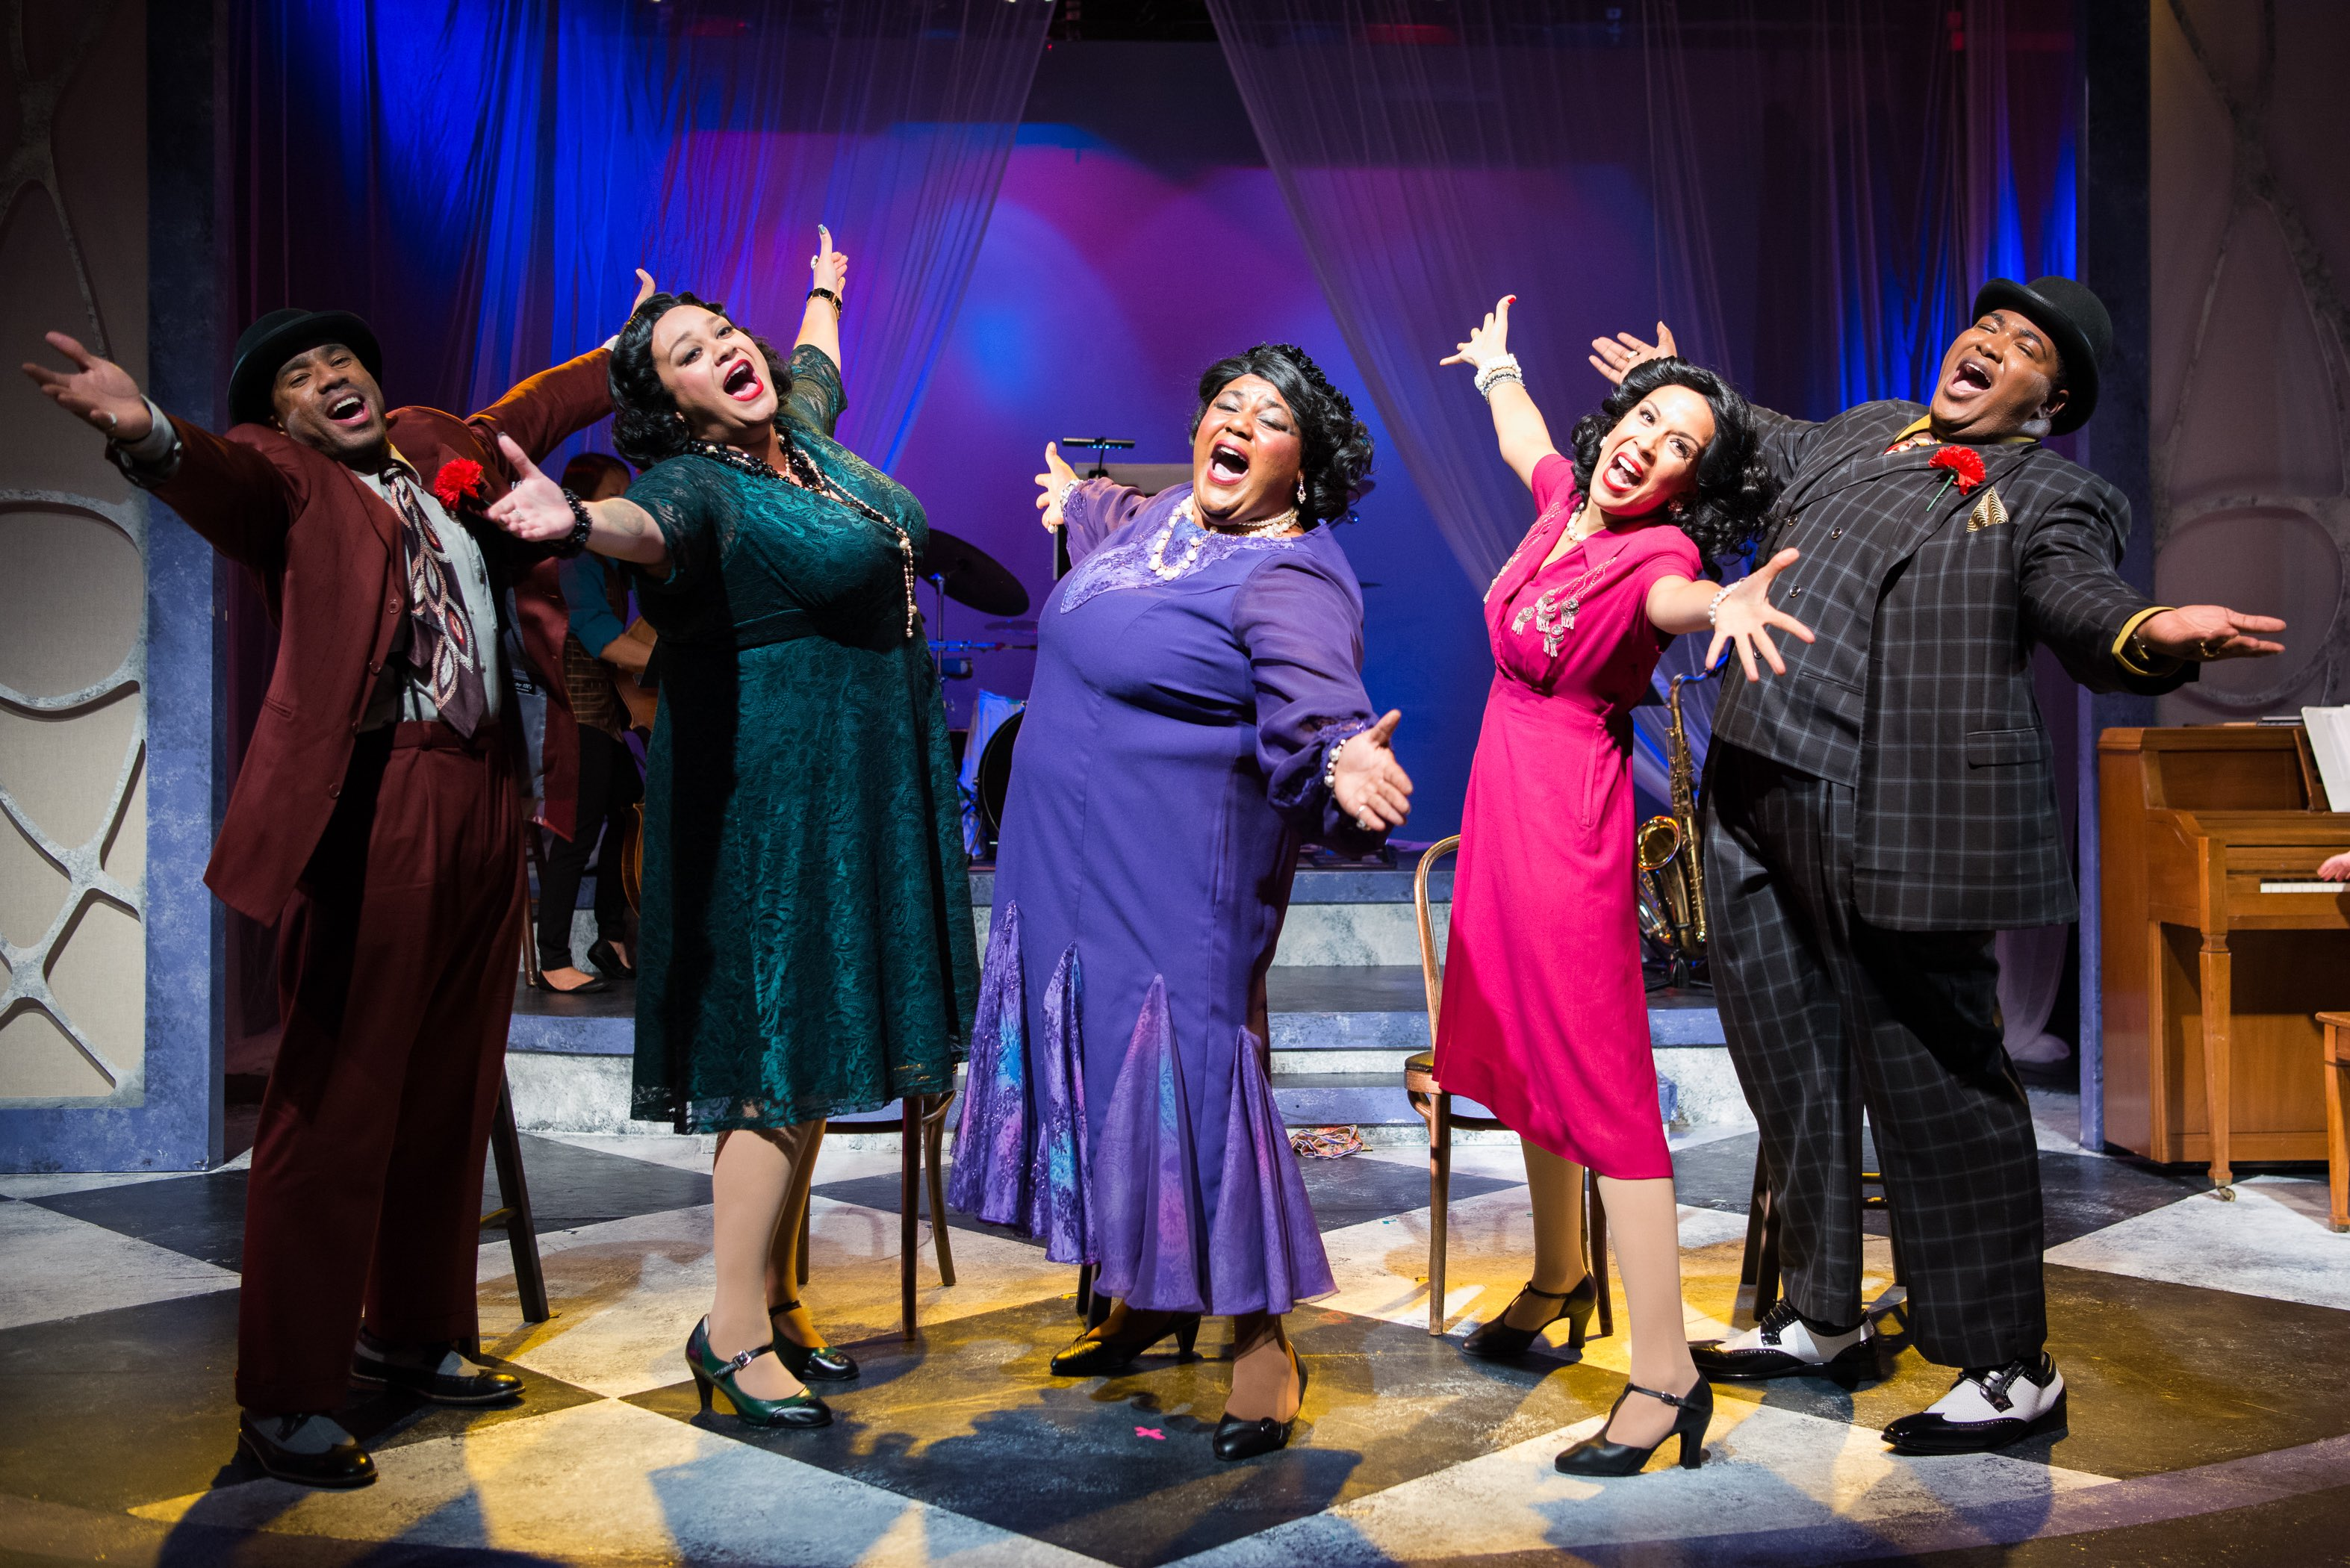 The Cast of AIN'T MISBEHAVIN' (L to R): Arís-Allen Roberson, Katrina Lauren McGraw, Erica Richardson, Ashley D. Gallo, and Branden 'Noel' Thomas. Photo by Ben Krantz Studios